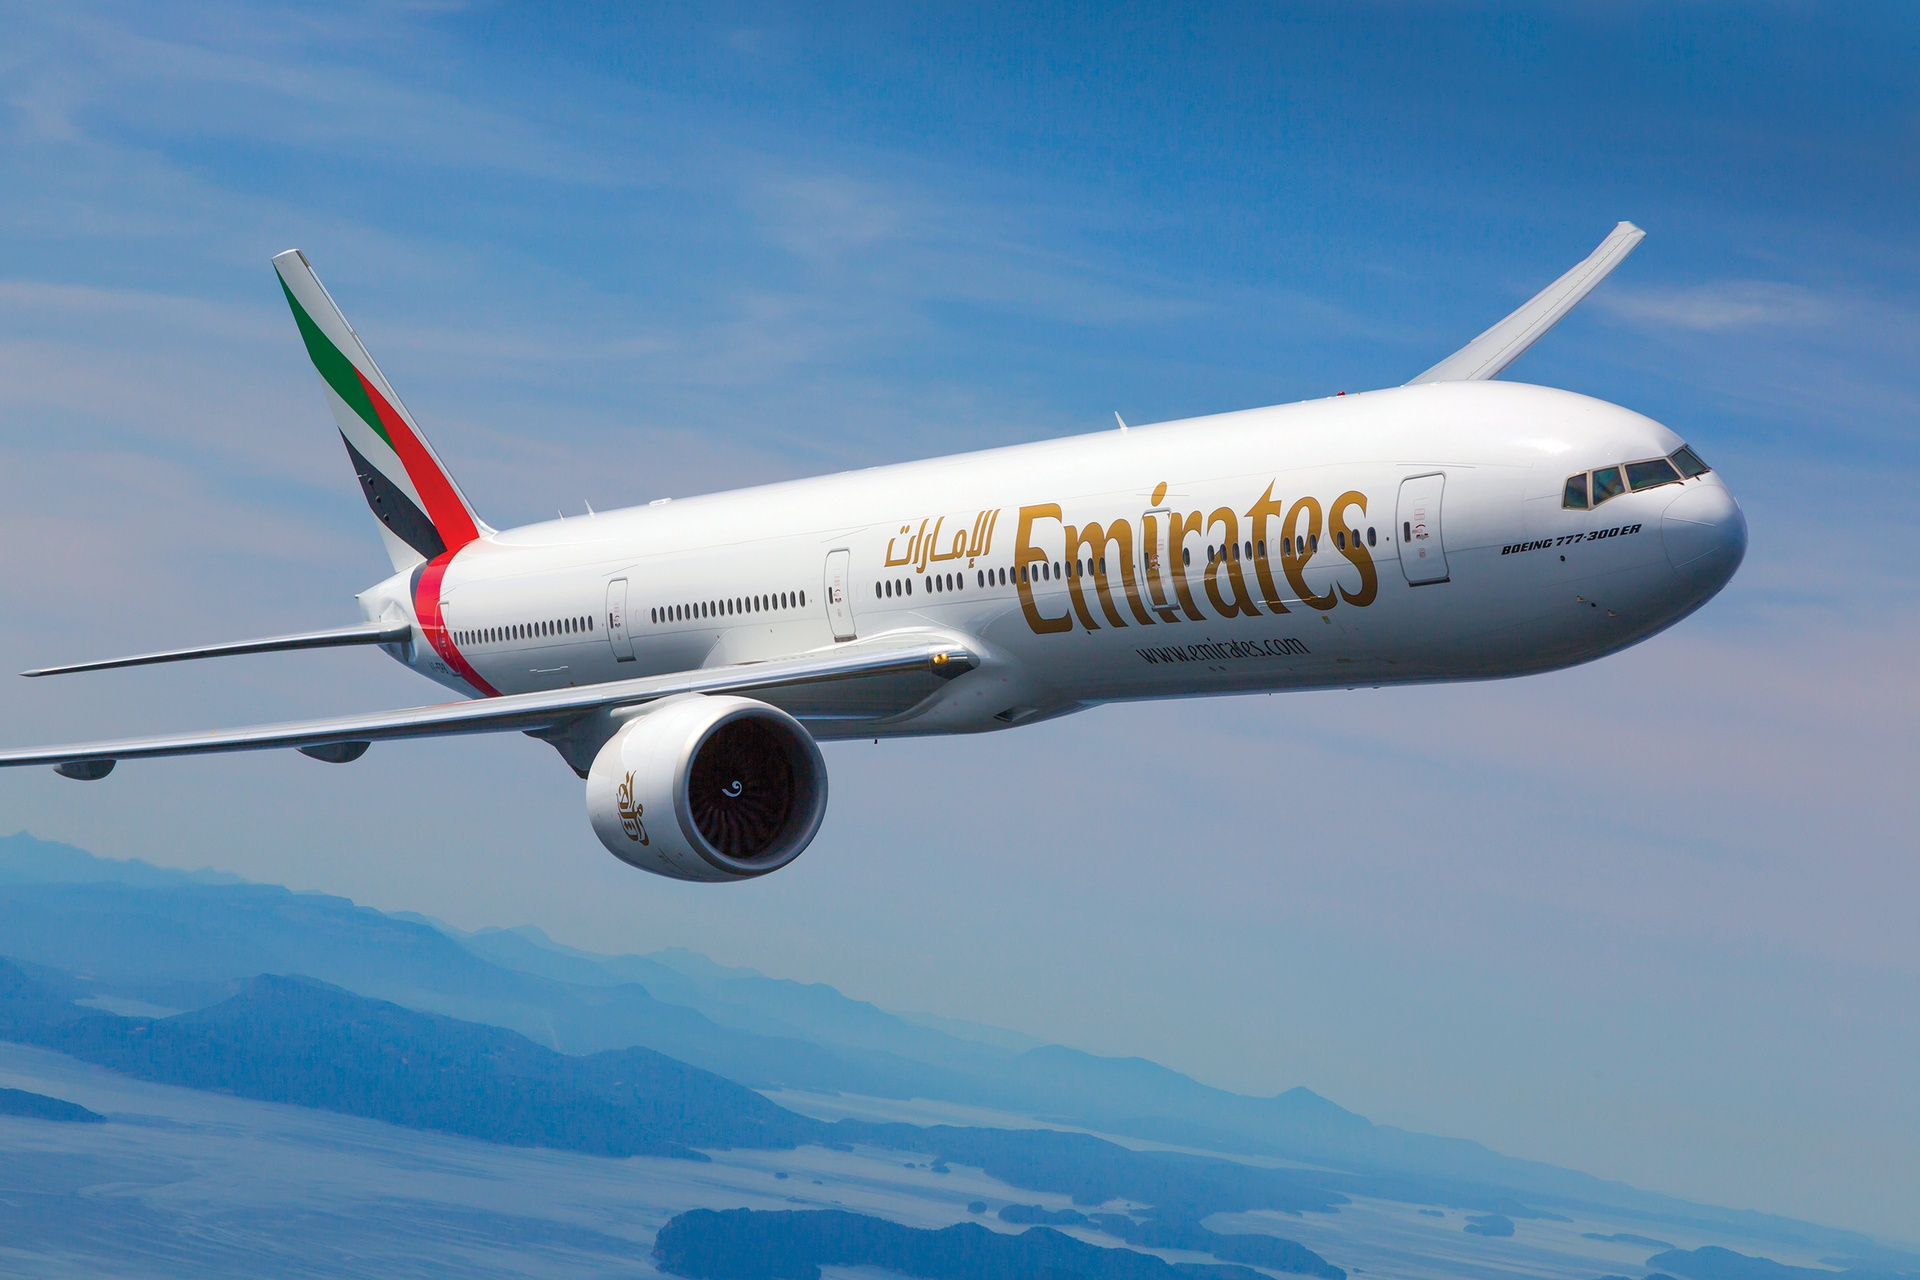 Emirates will unveil its new Boeing 777 Business Class seat at ITB next week. The new seat will make its commercial debut on Emirates' 170th Boeing 777 aircraft, a -300ER version which the airline expects to receive in November 2016.